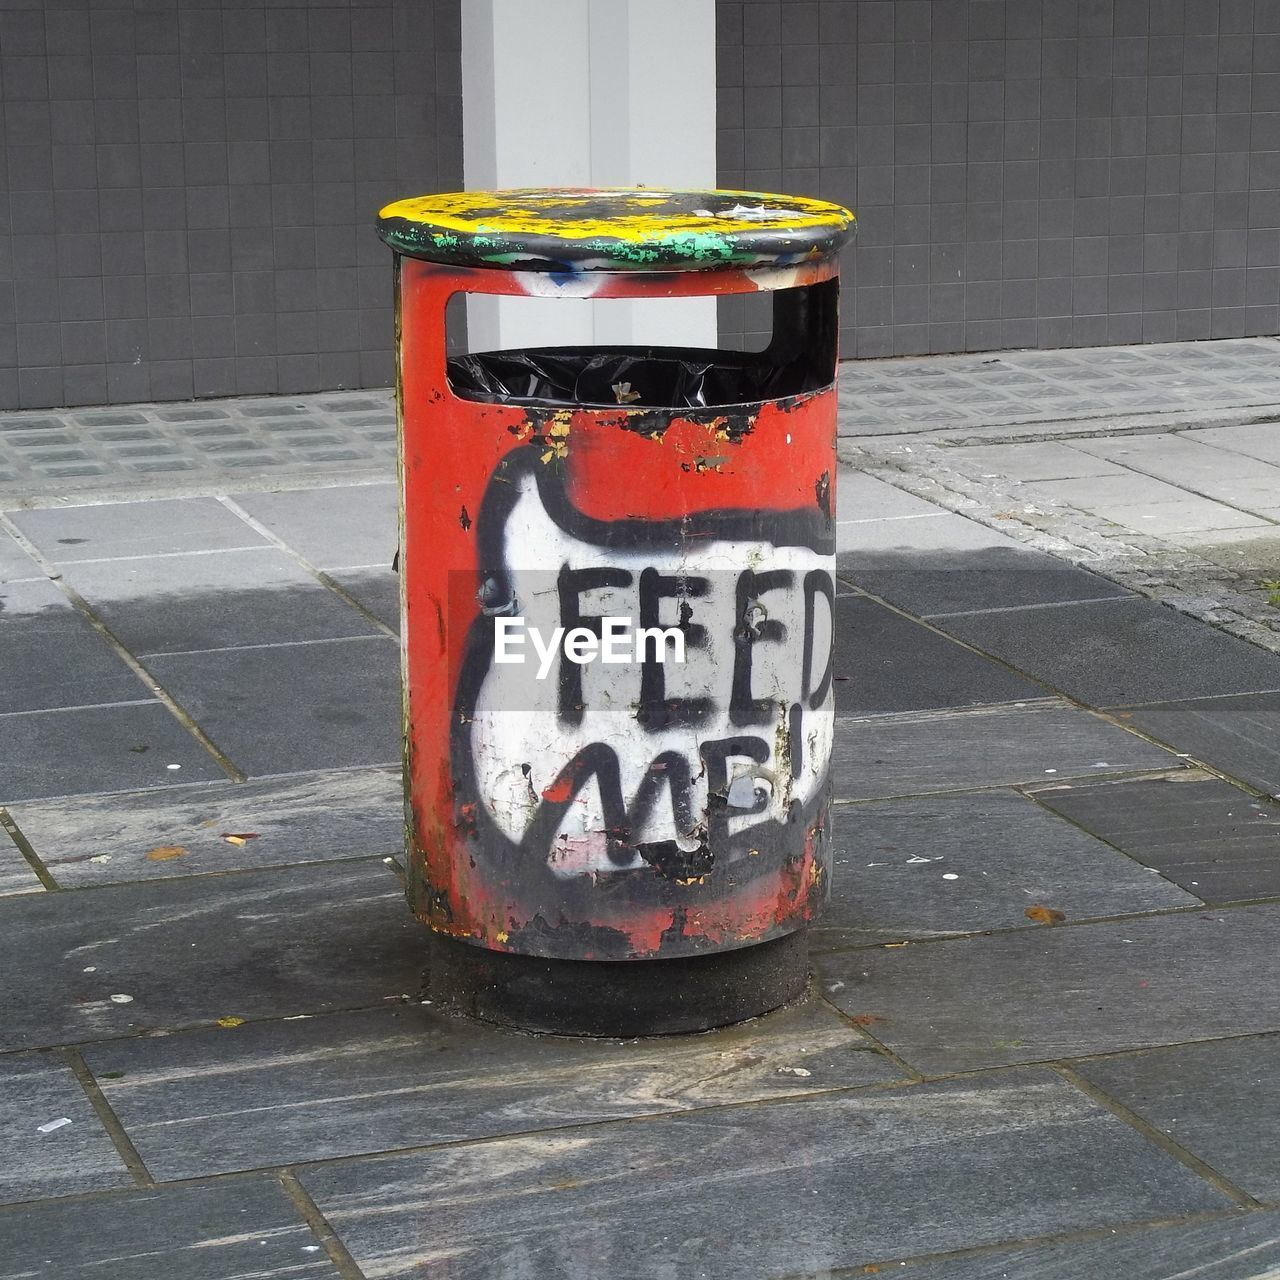 text, day, western script, footpath, no people, street, garbage bin, communication, outdoors, sidewalk, city, garbage can, recycling bin, metal, recycling, road, environmental issues, red, sign, safety